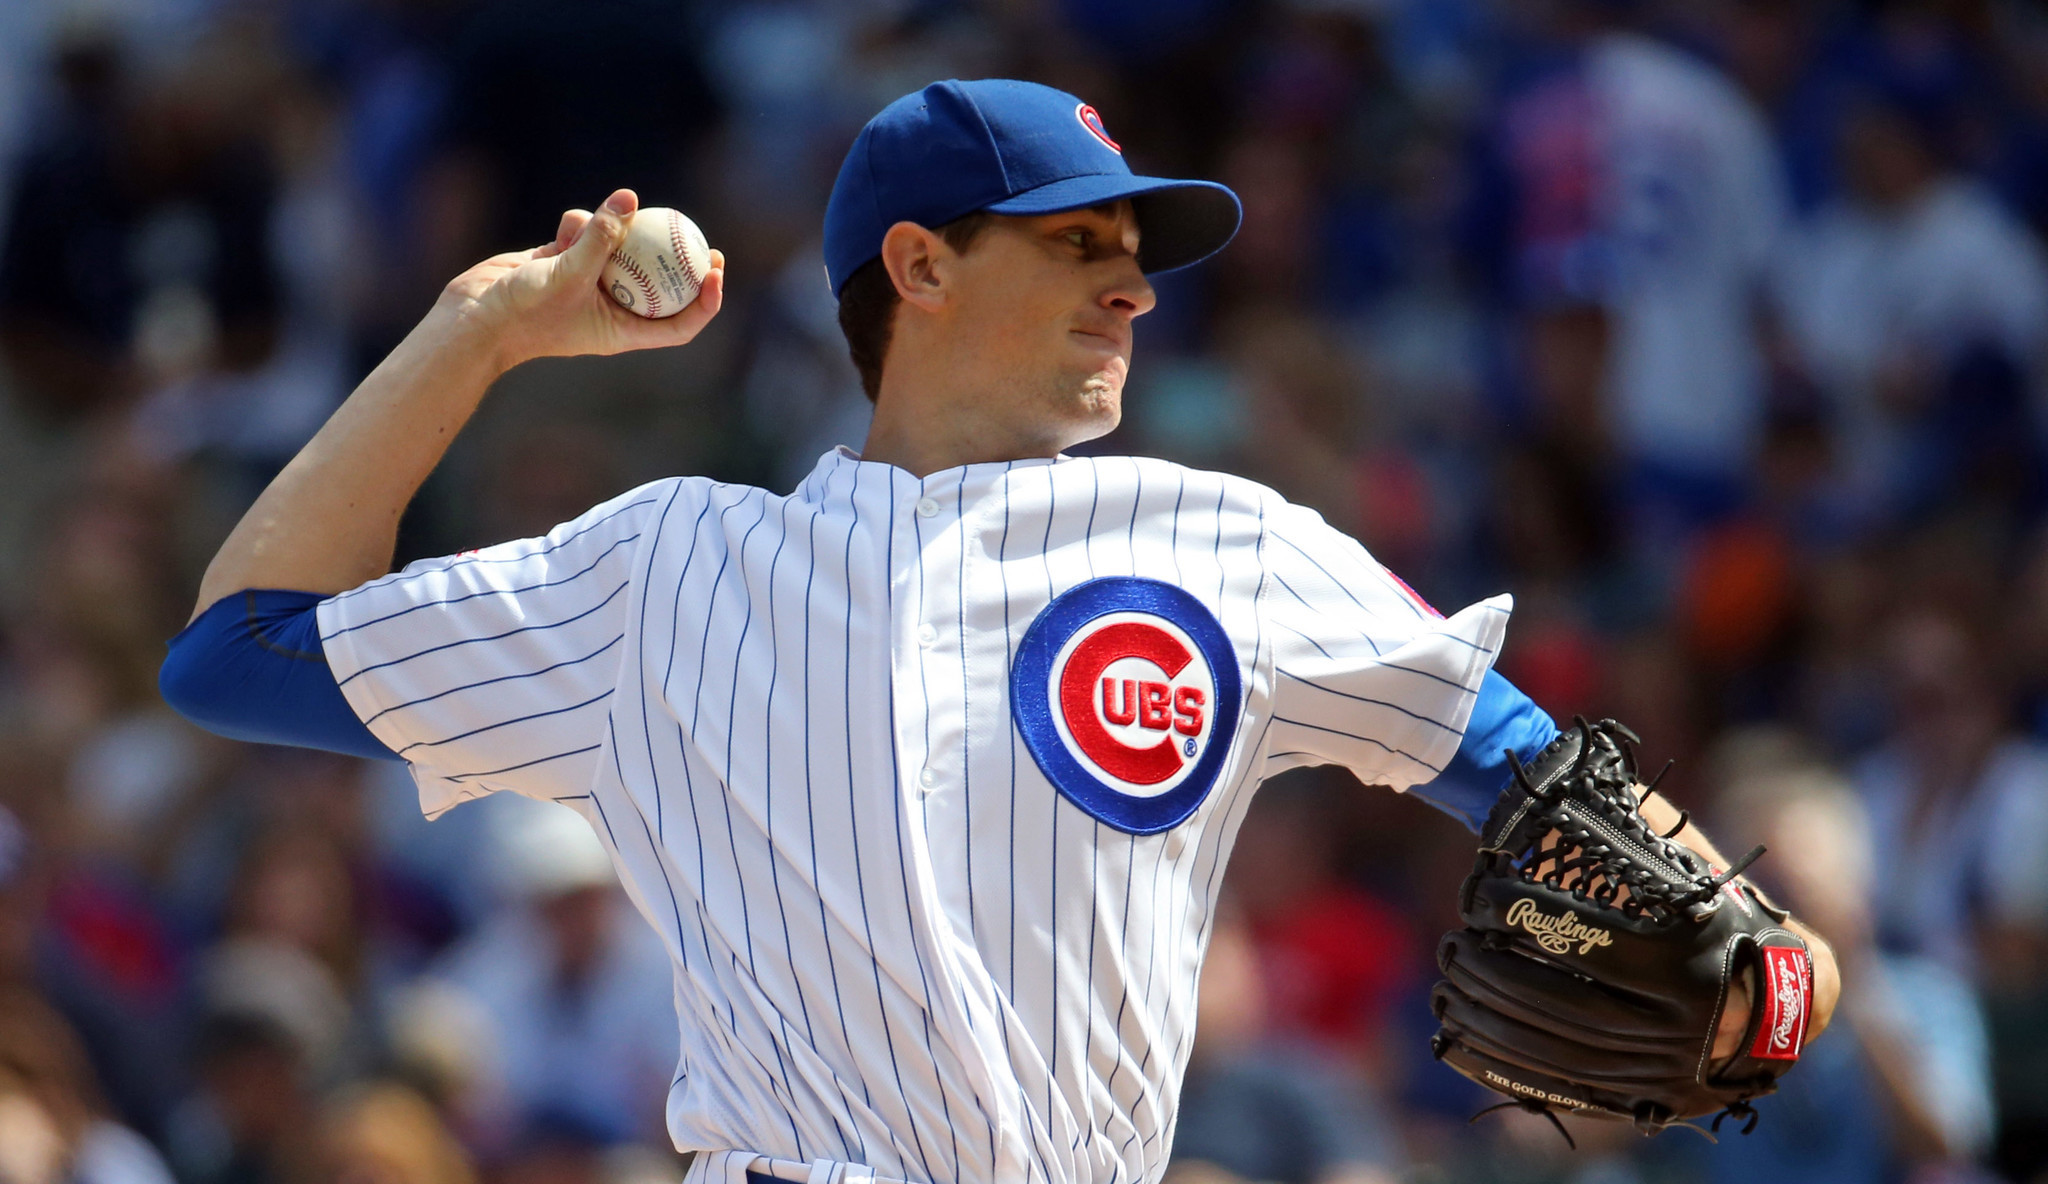 Ct-gameday-cubs-brewers-spt-0919-20160918